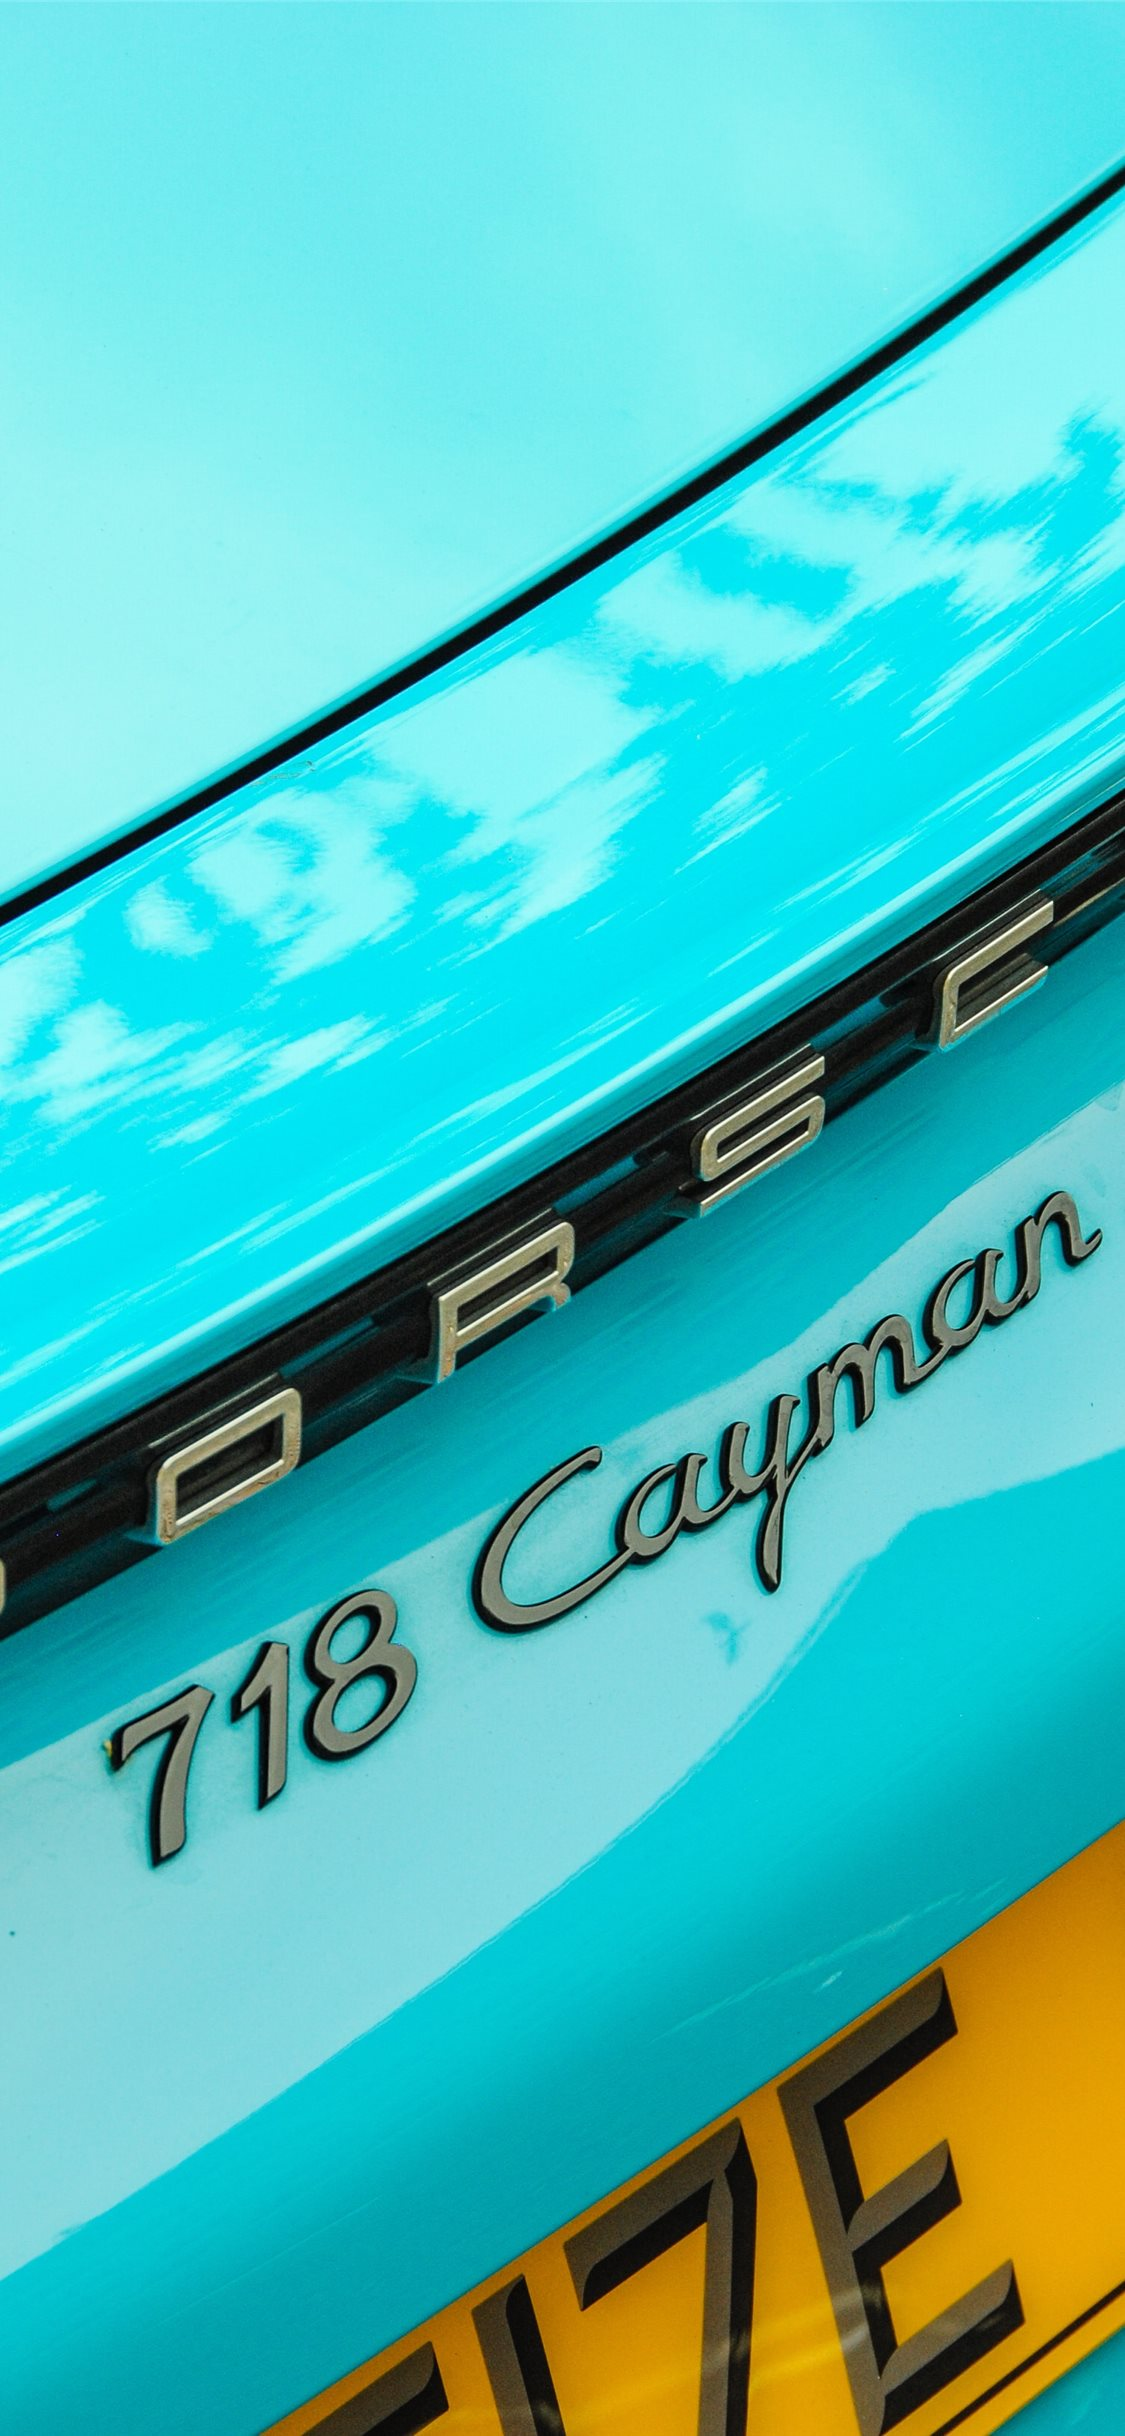 Teal Porsche Cayman 718 S Iphone X Wallpapers Free Download